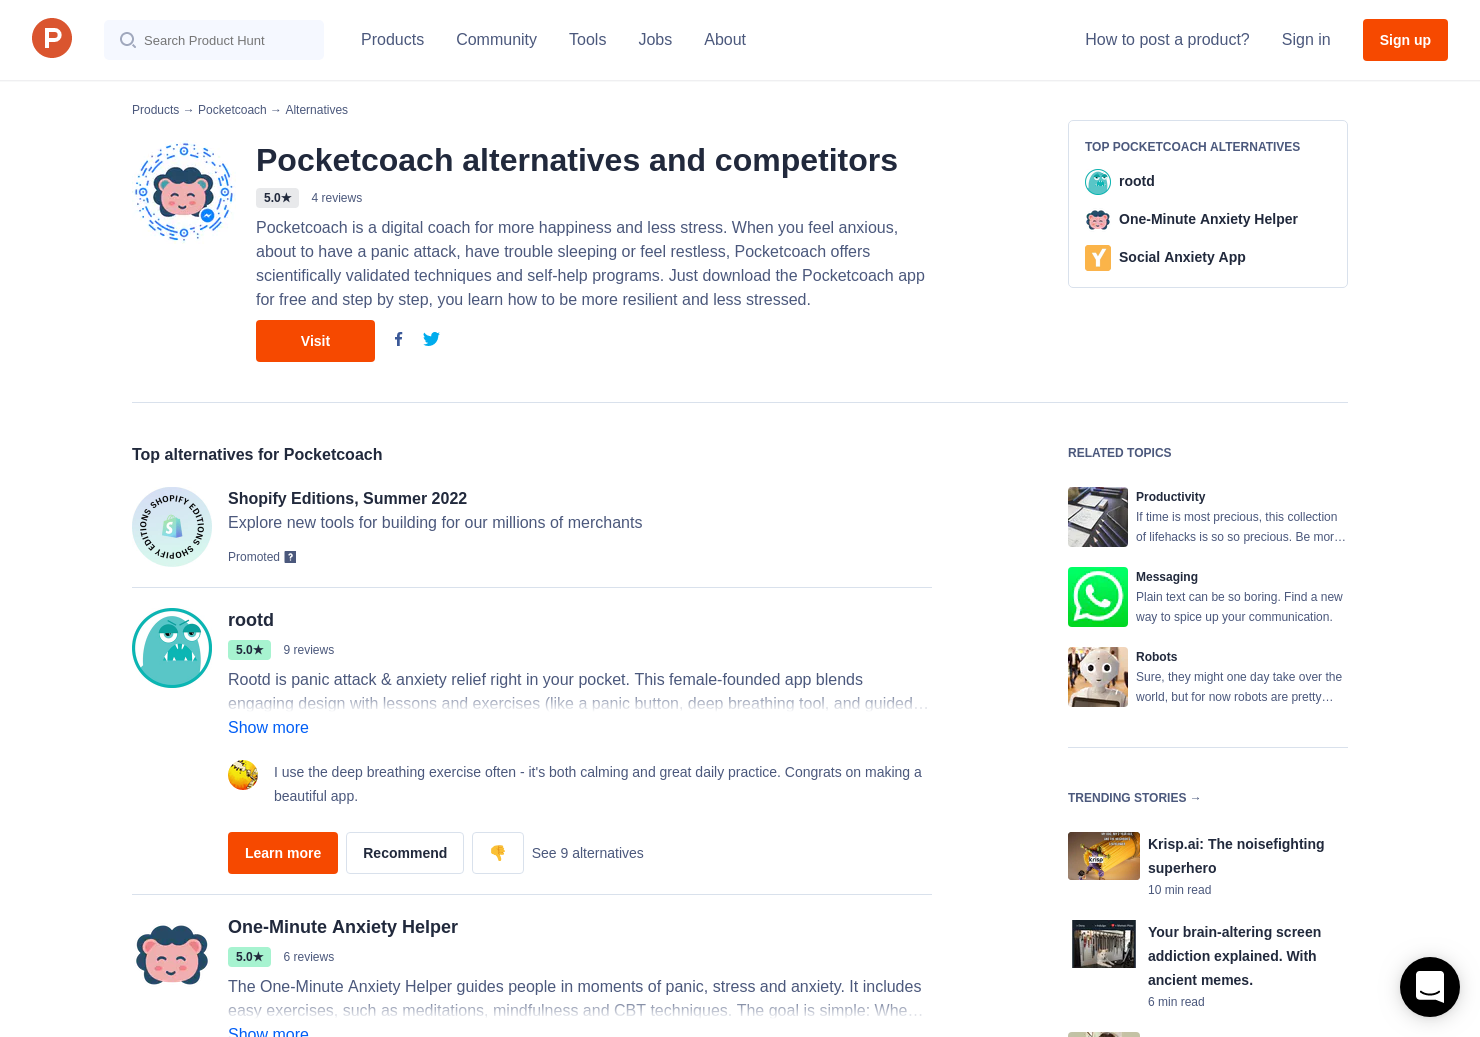 9 Alternatives to Pocketcoach | Product Hunt